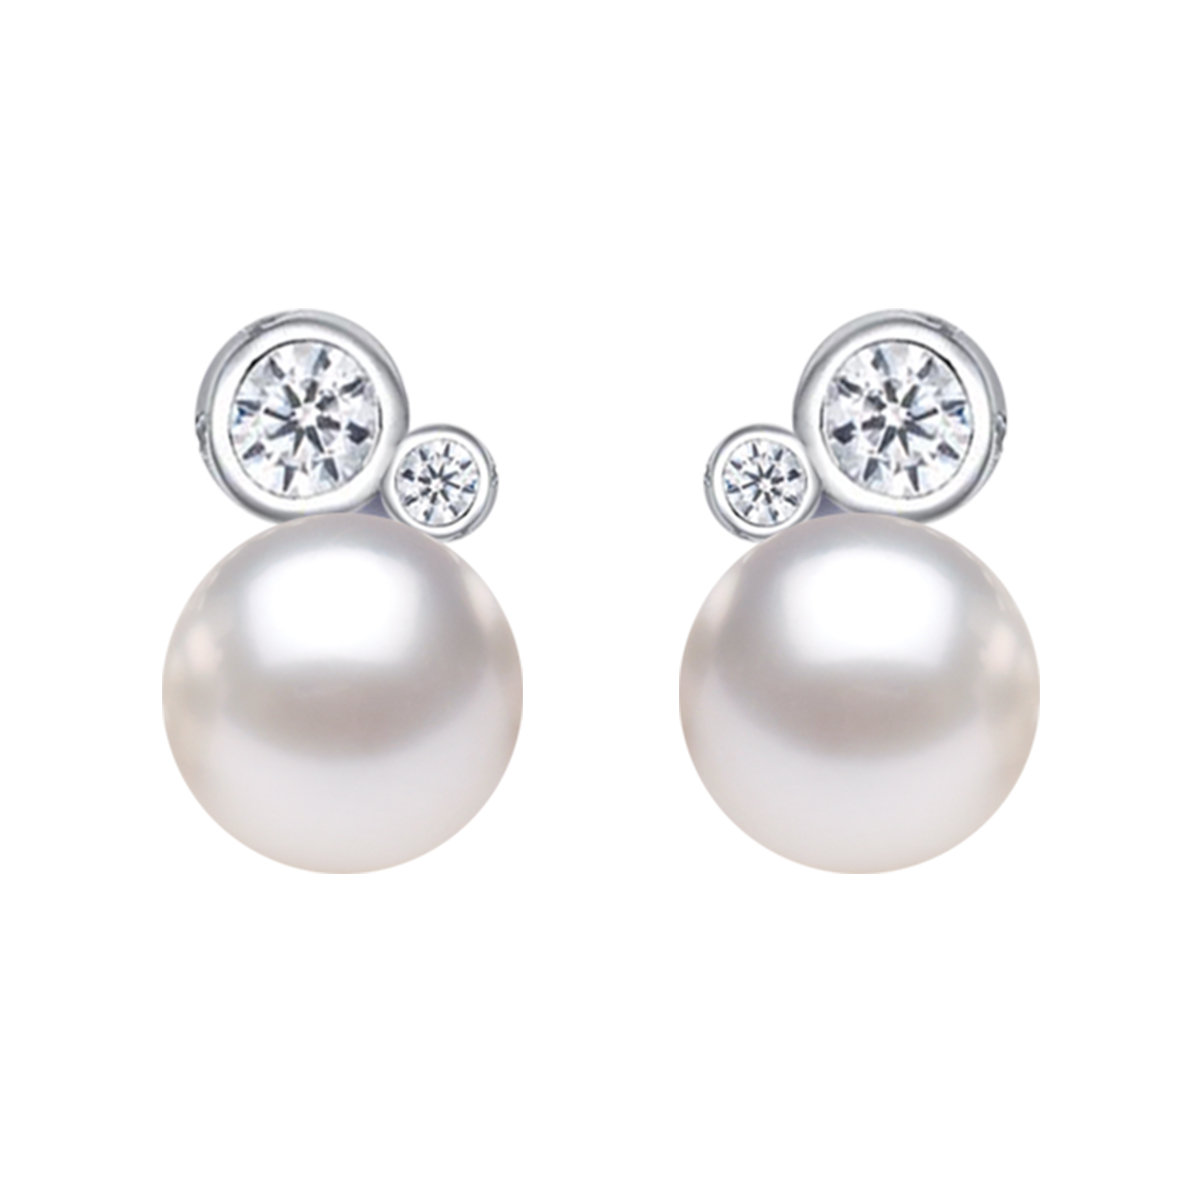 Film maker- Cultured fresh water pearl with cz mounted 925 silver earring